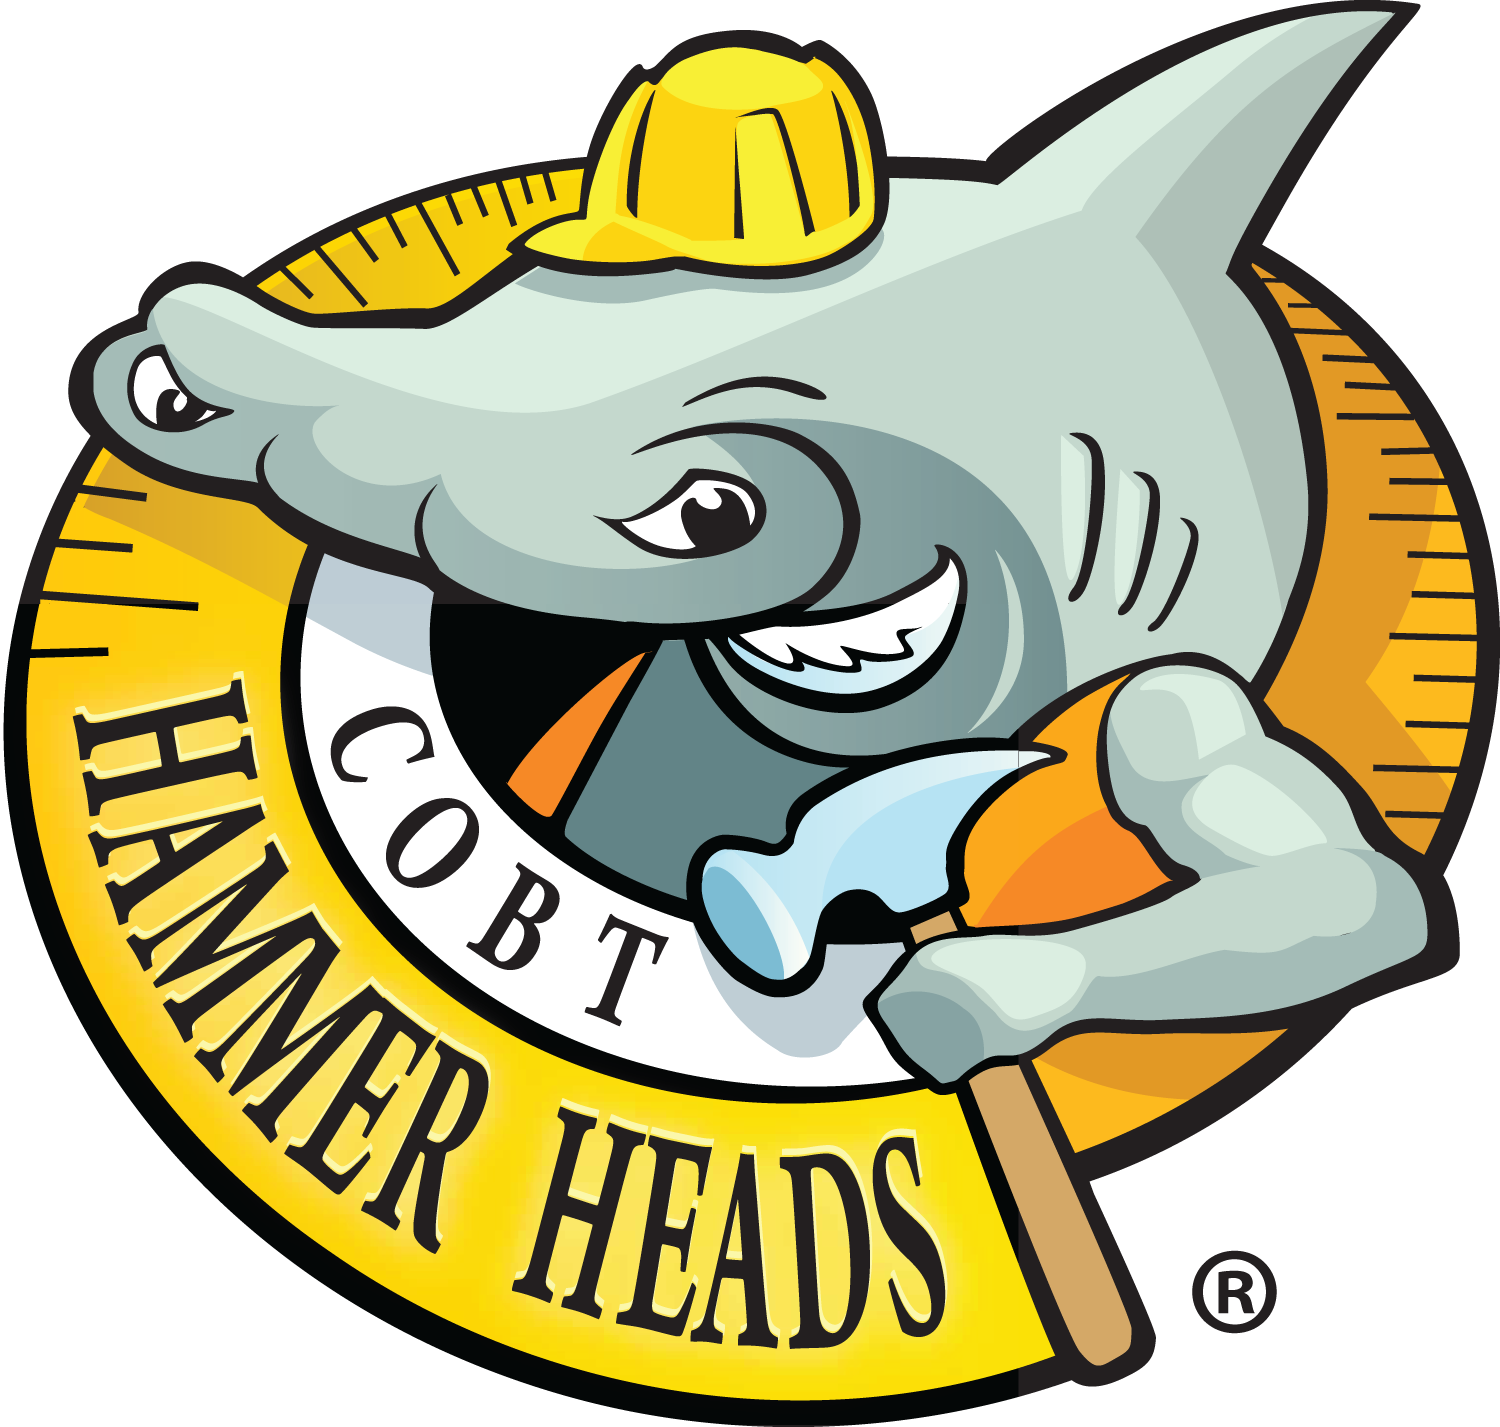 Hammer Heads Logo no shadow Black R